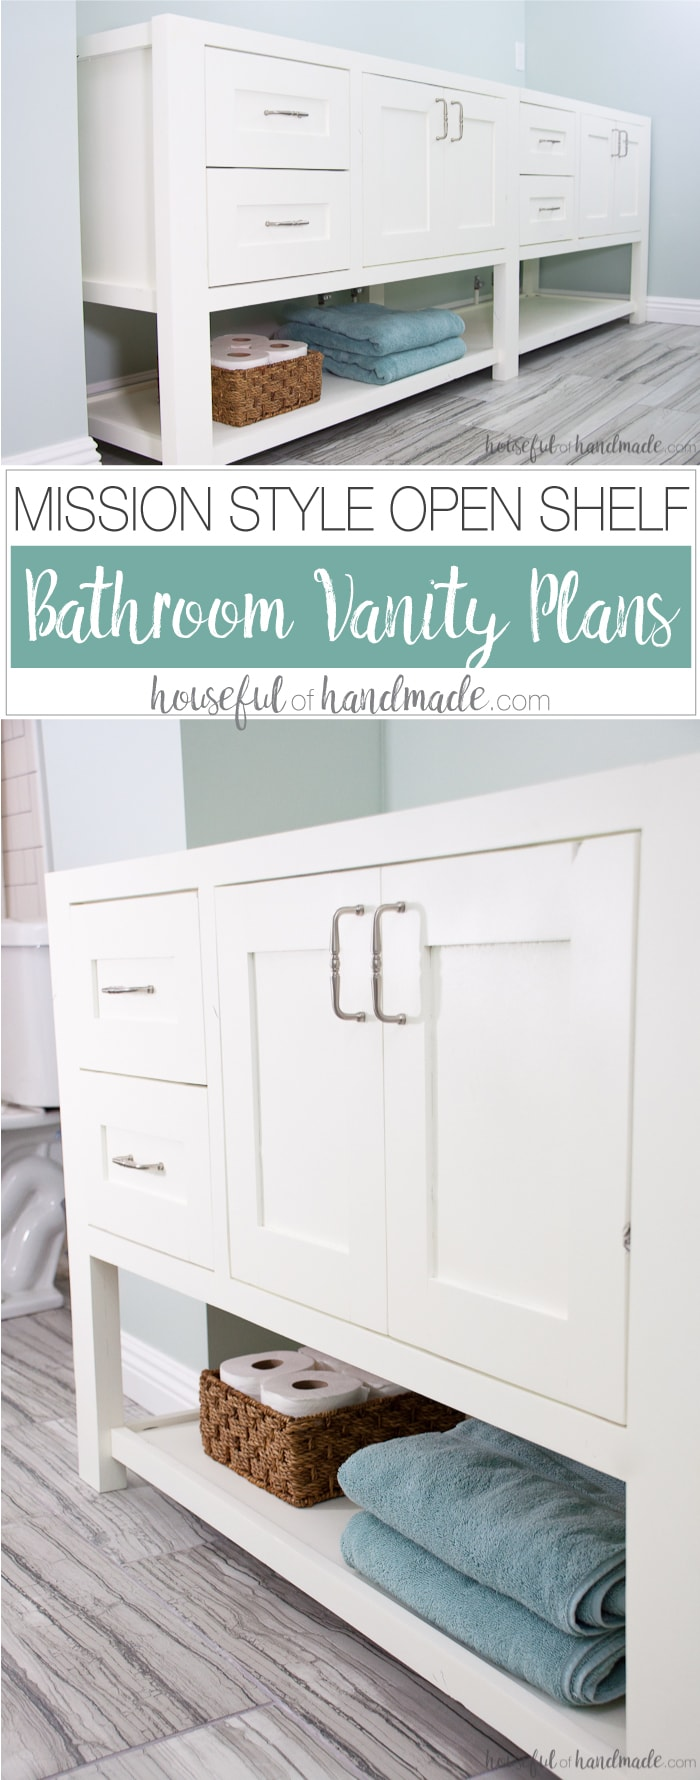 with a little bit of woodworking experience you can build your own bathroom vanity build - Bathroom Vanity Plans